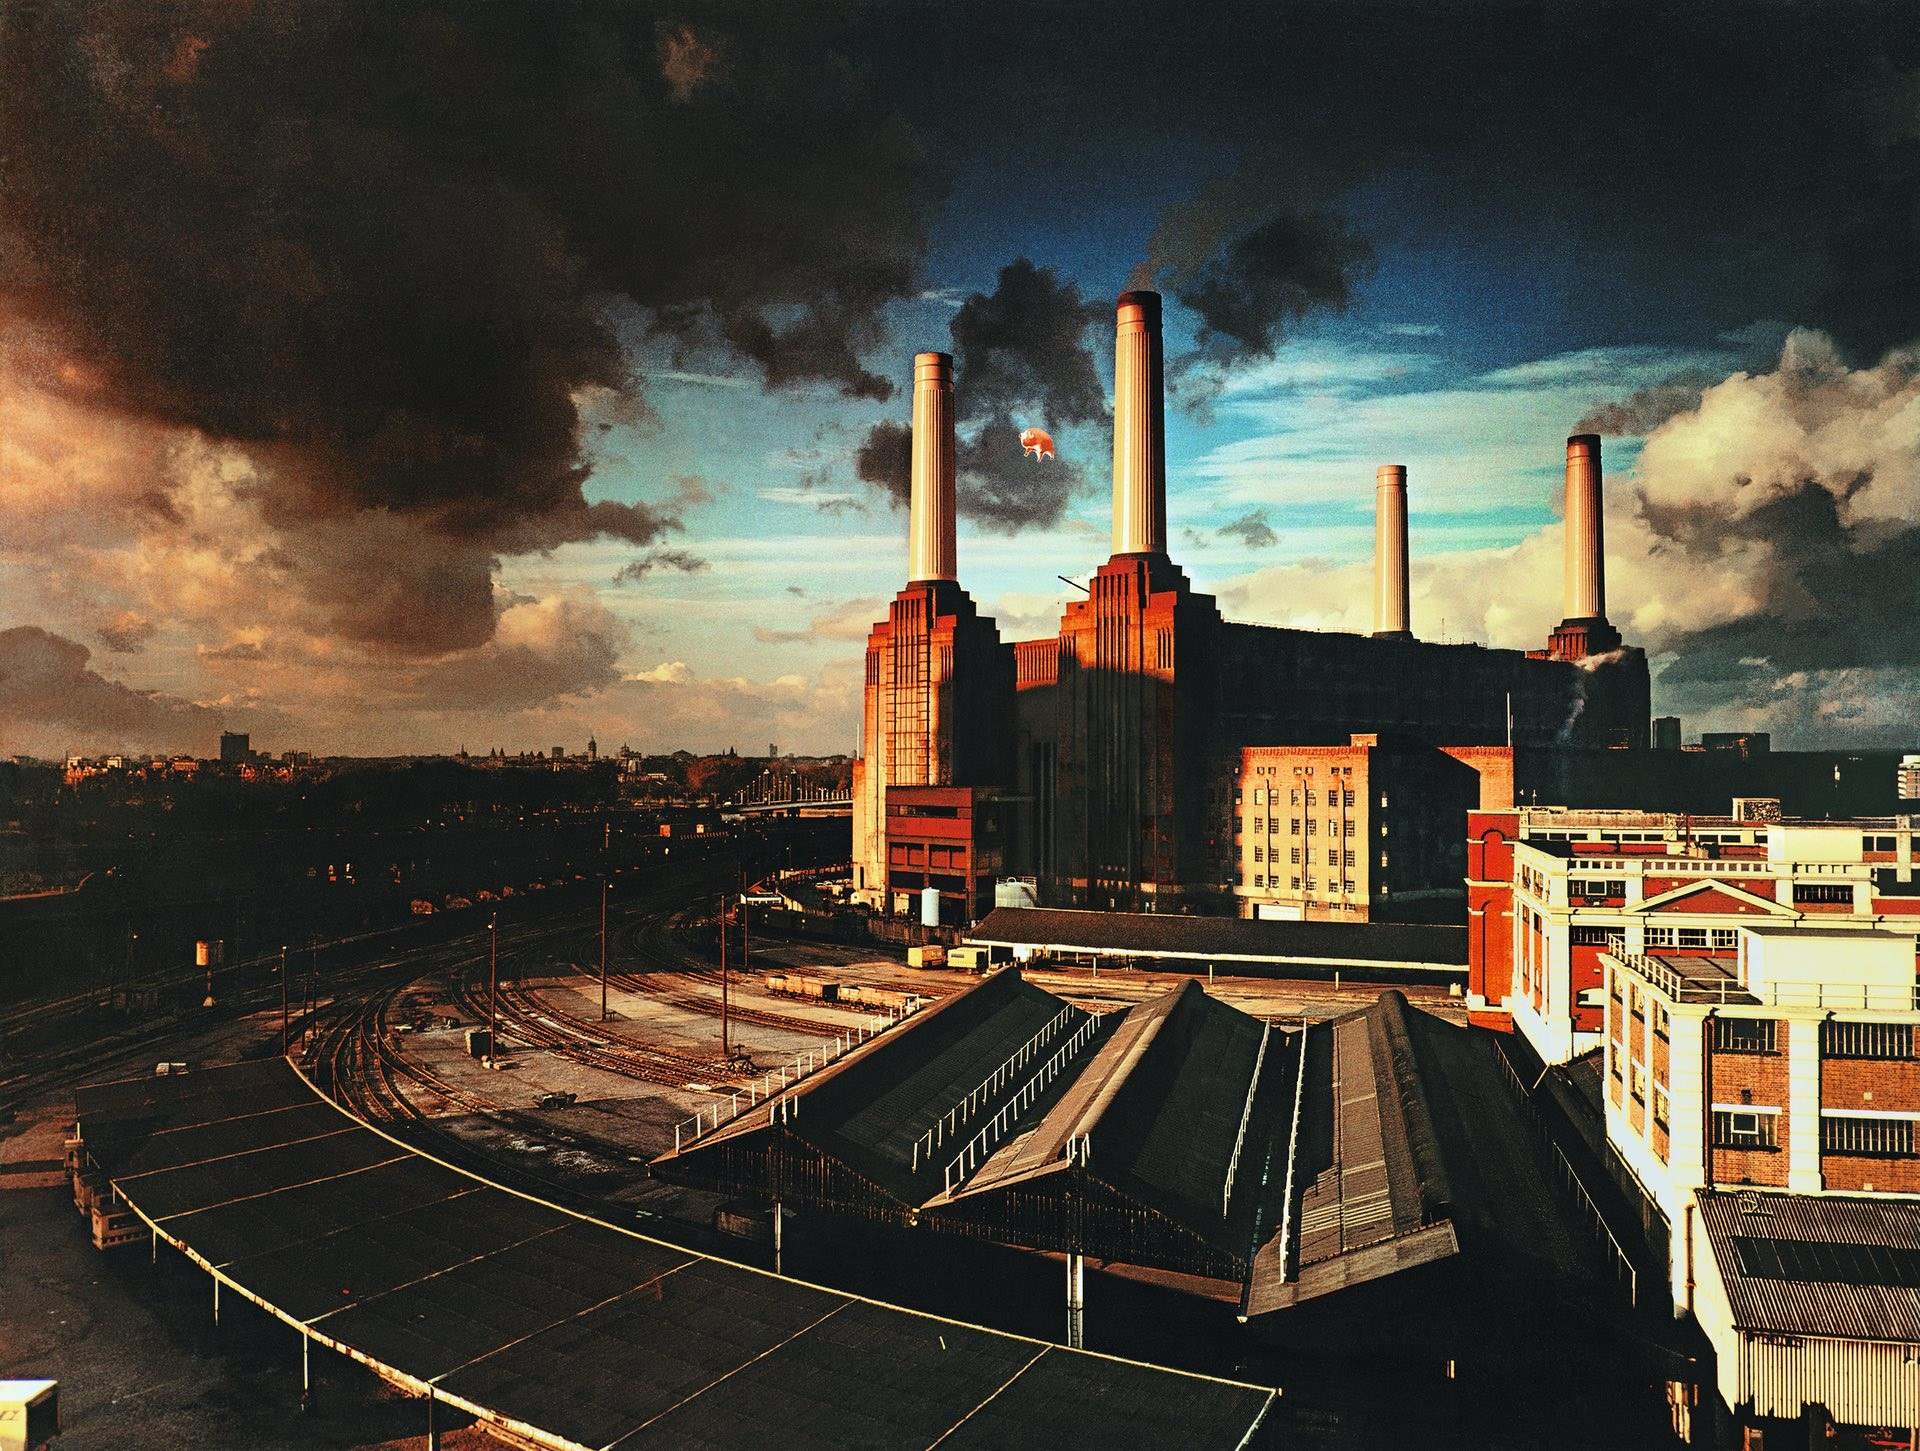 pink%20floyd%20wallpaper%20096%20 %201920x1451 - Pink Floyd's new 'Animals' takes in a railway!